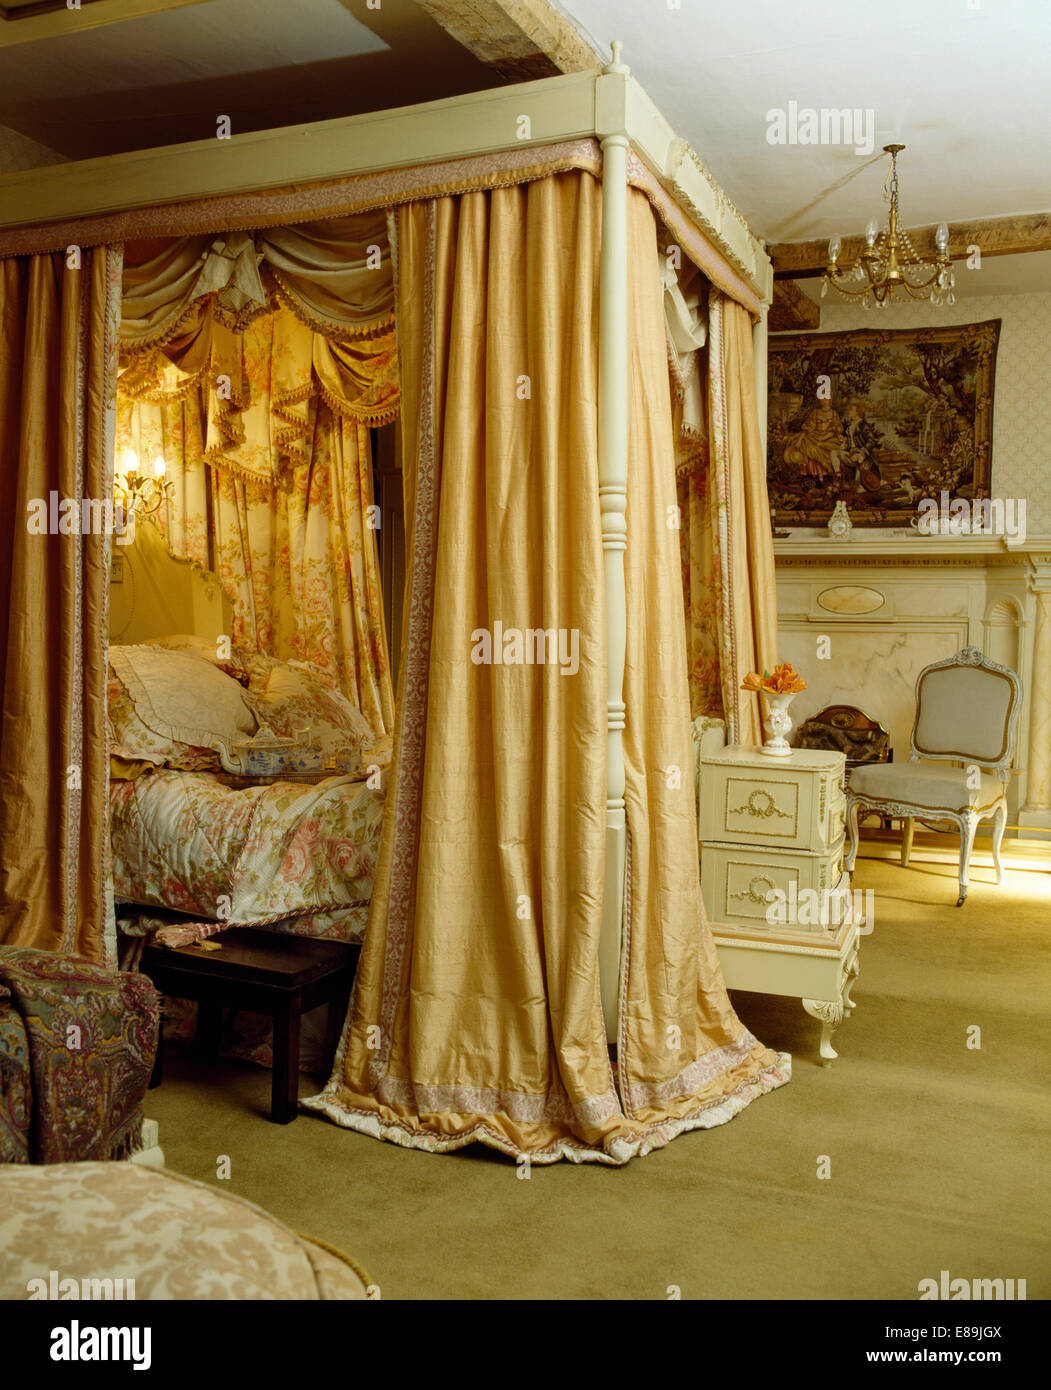 Opulent Cream Silk Drapes On Four Poster Bed In Countgry Bedroom